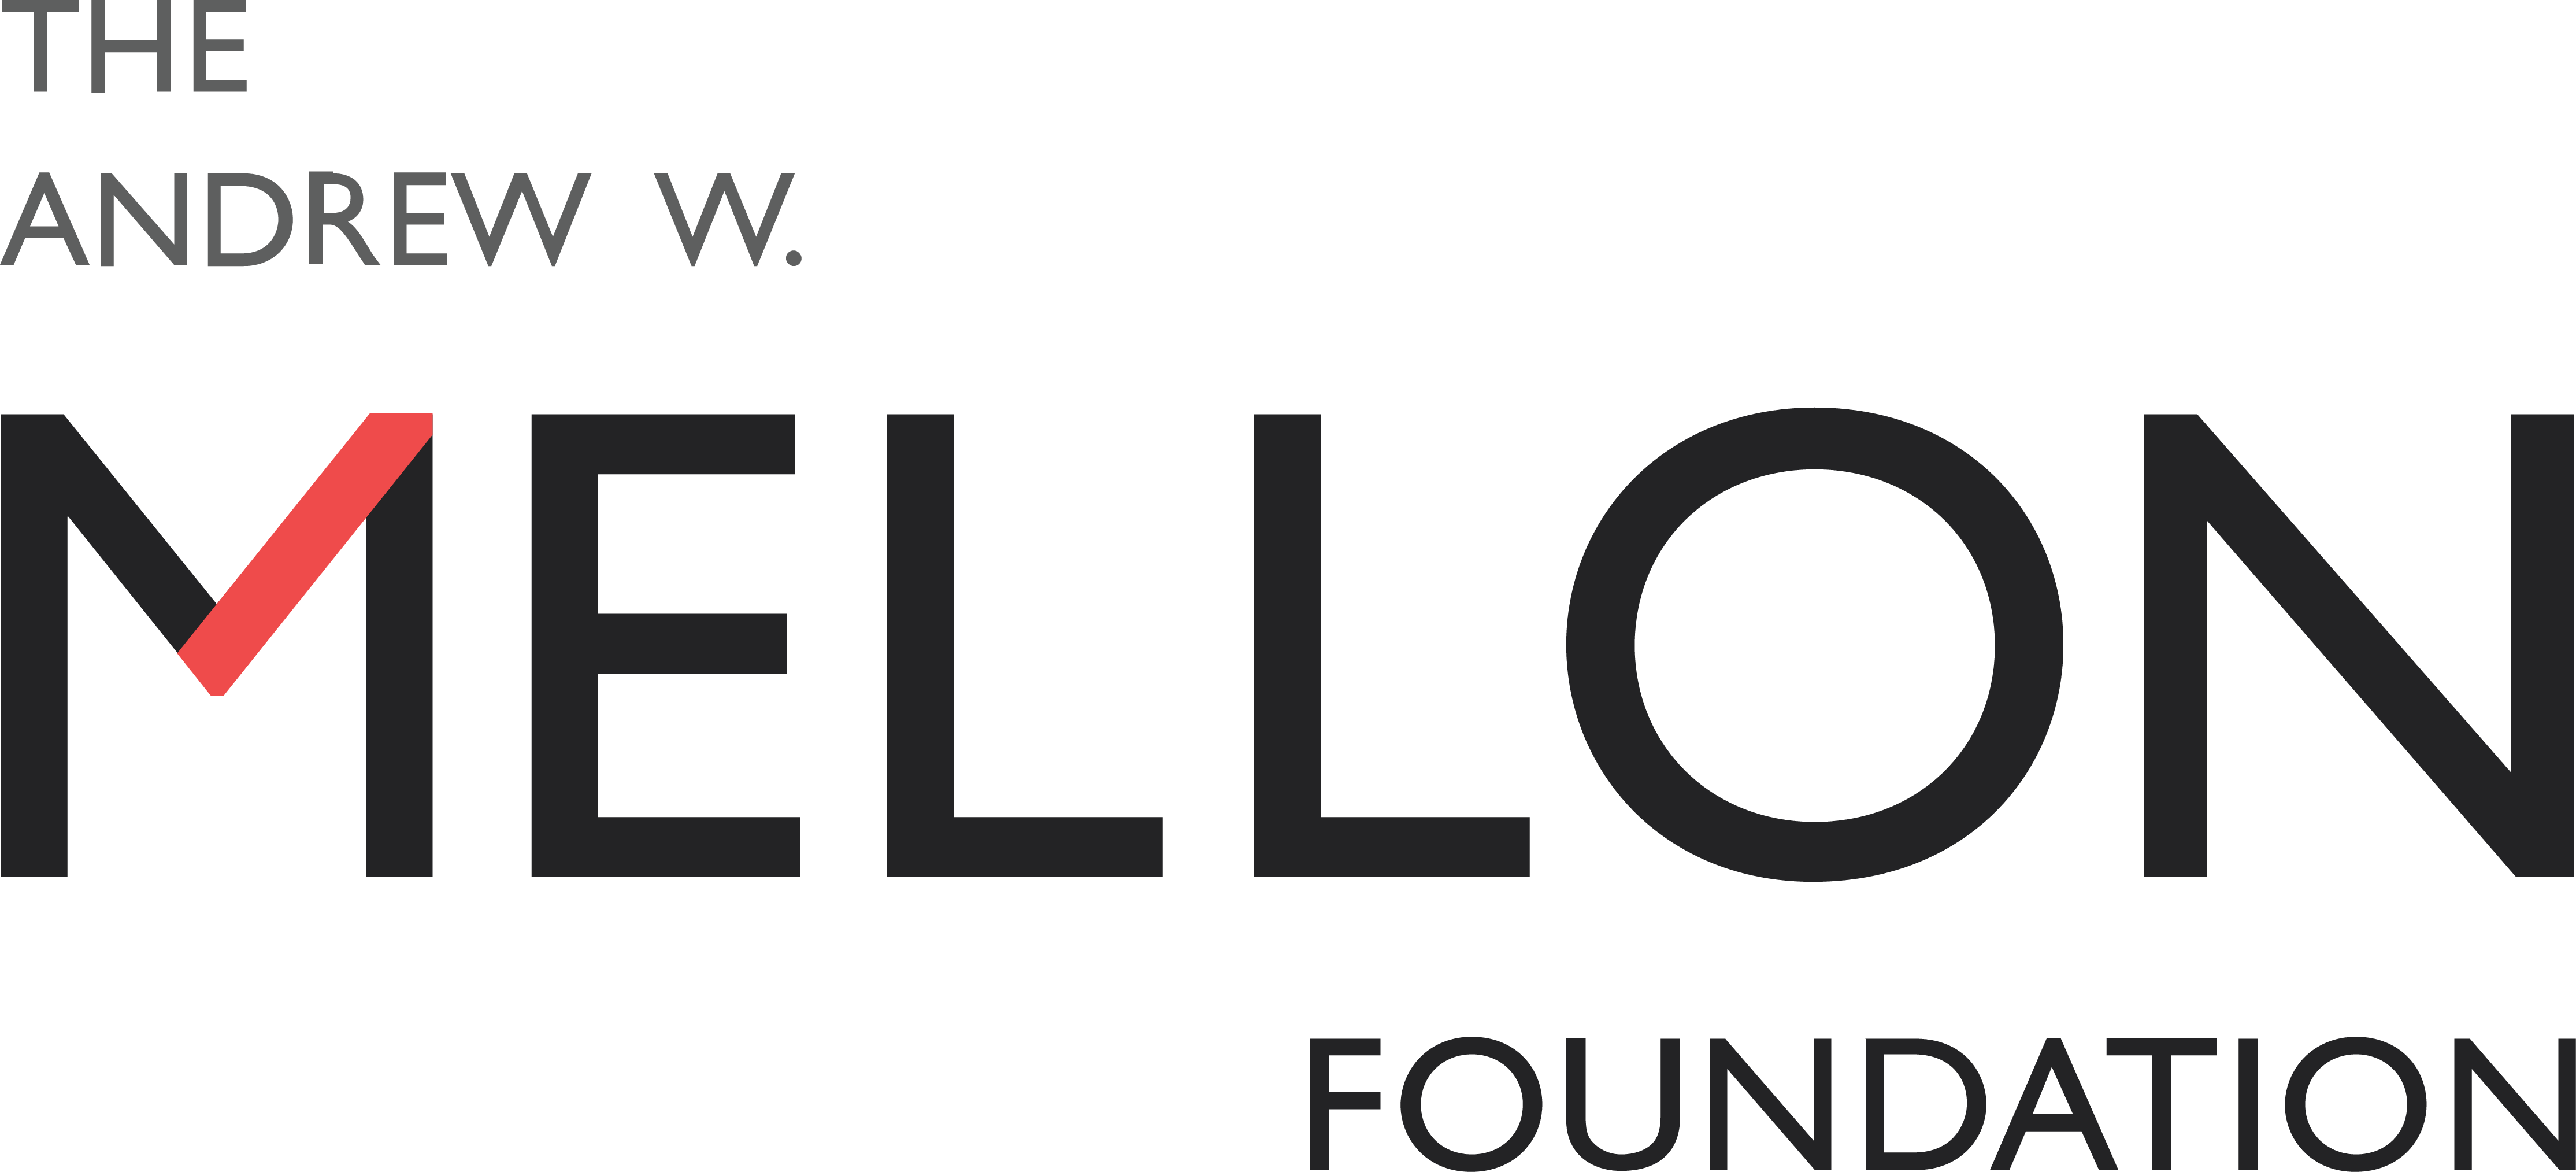 The-Andrew-W-Mellon-Foundation